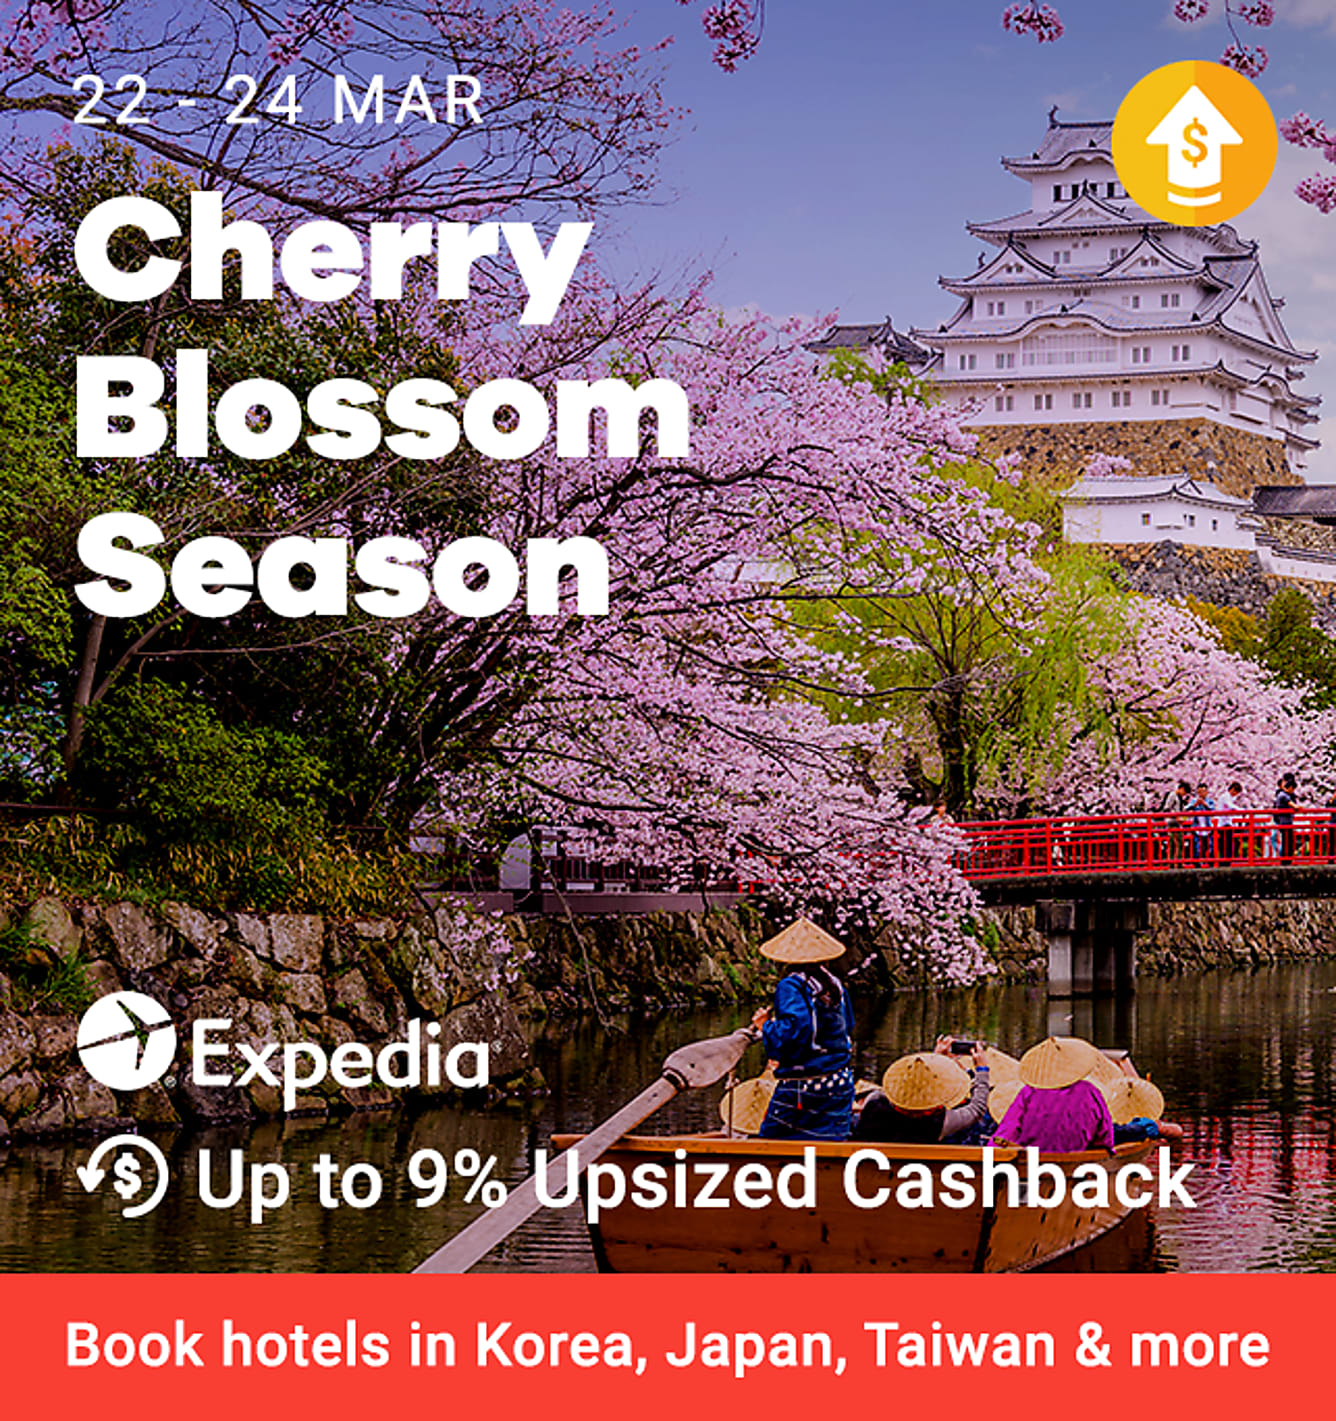 Expedia 9% Upsized Cashback for hotels (was 6%) from 22-24 March + Expedia 3% Upsized Cashback for packages (was 2.5%) from 22-24 March